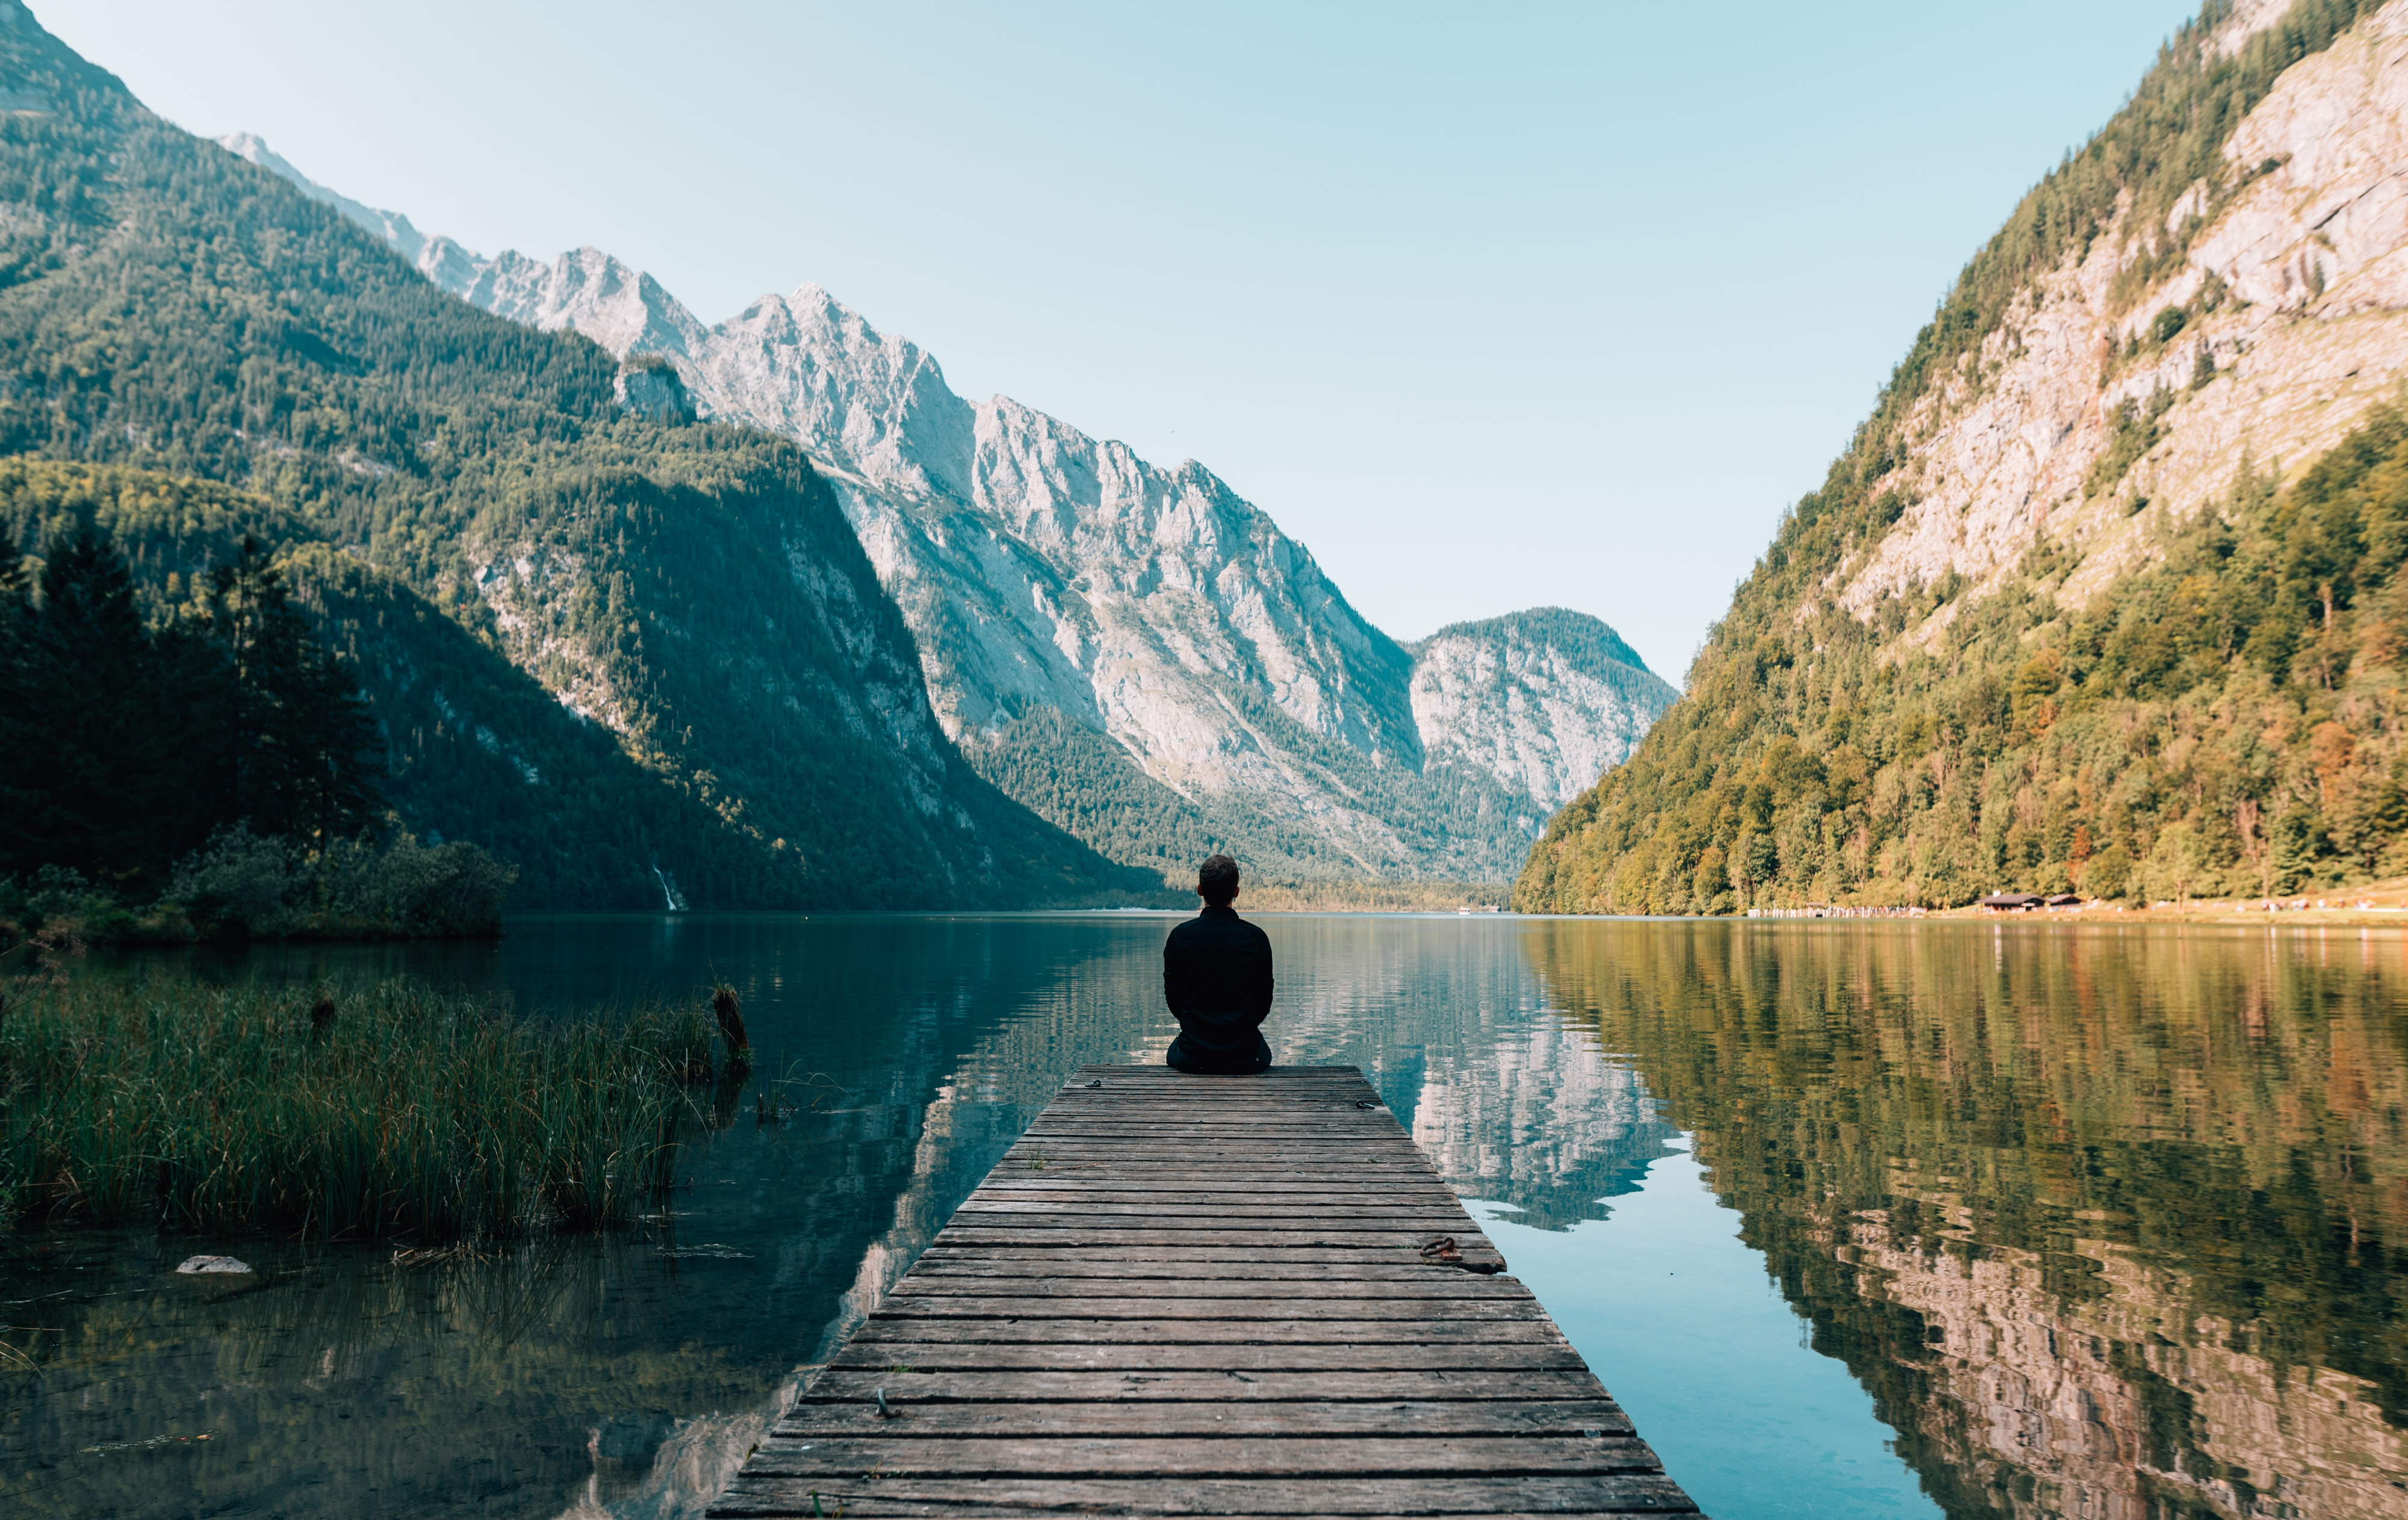 5 Cool Yoga and Adventure Combinations to Do on Your Travels